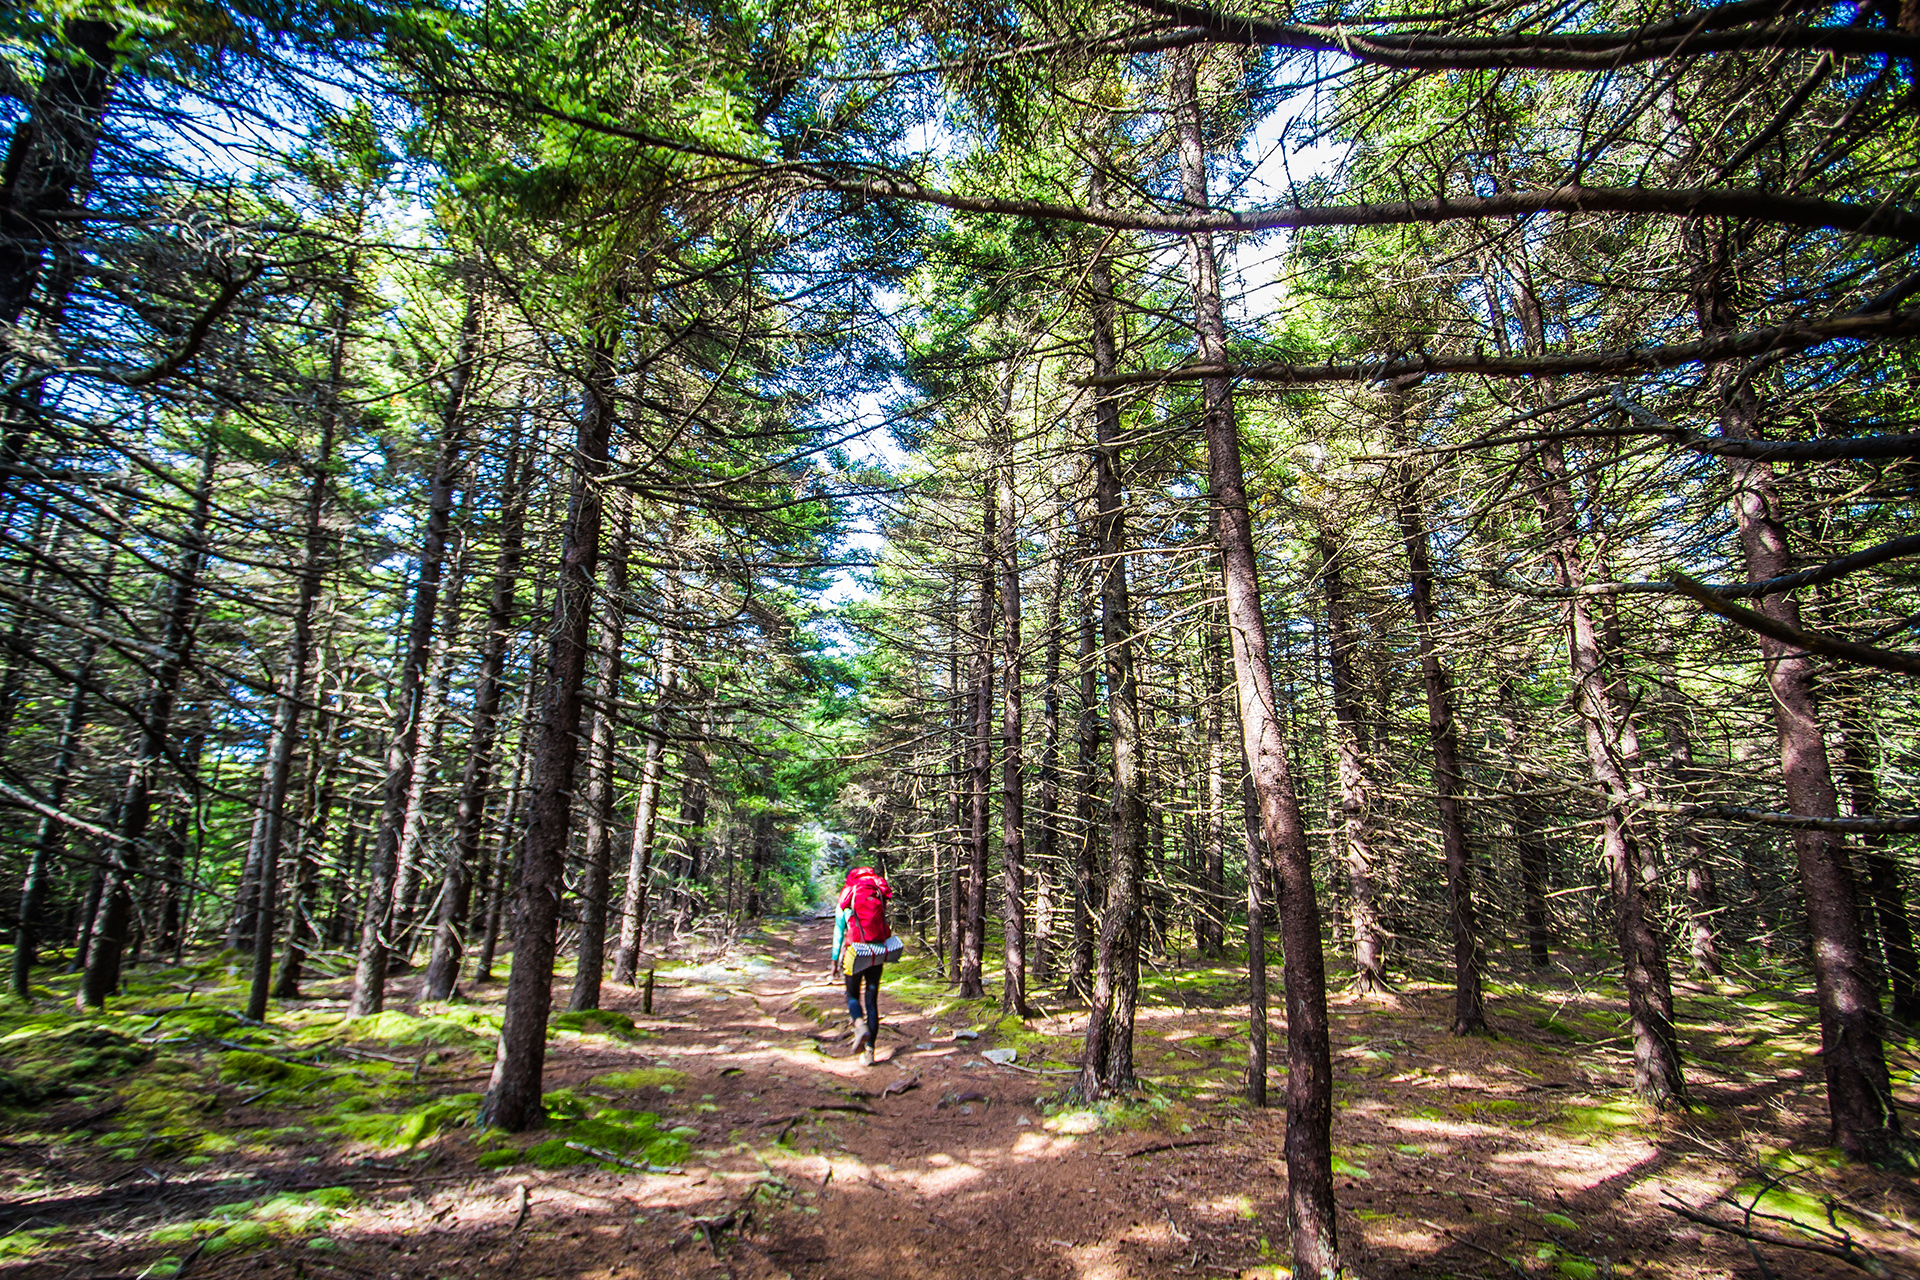 Hiking through the spruce forest